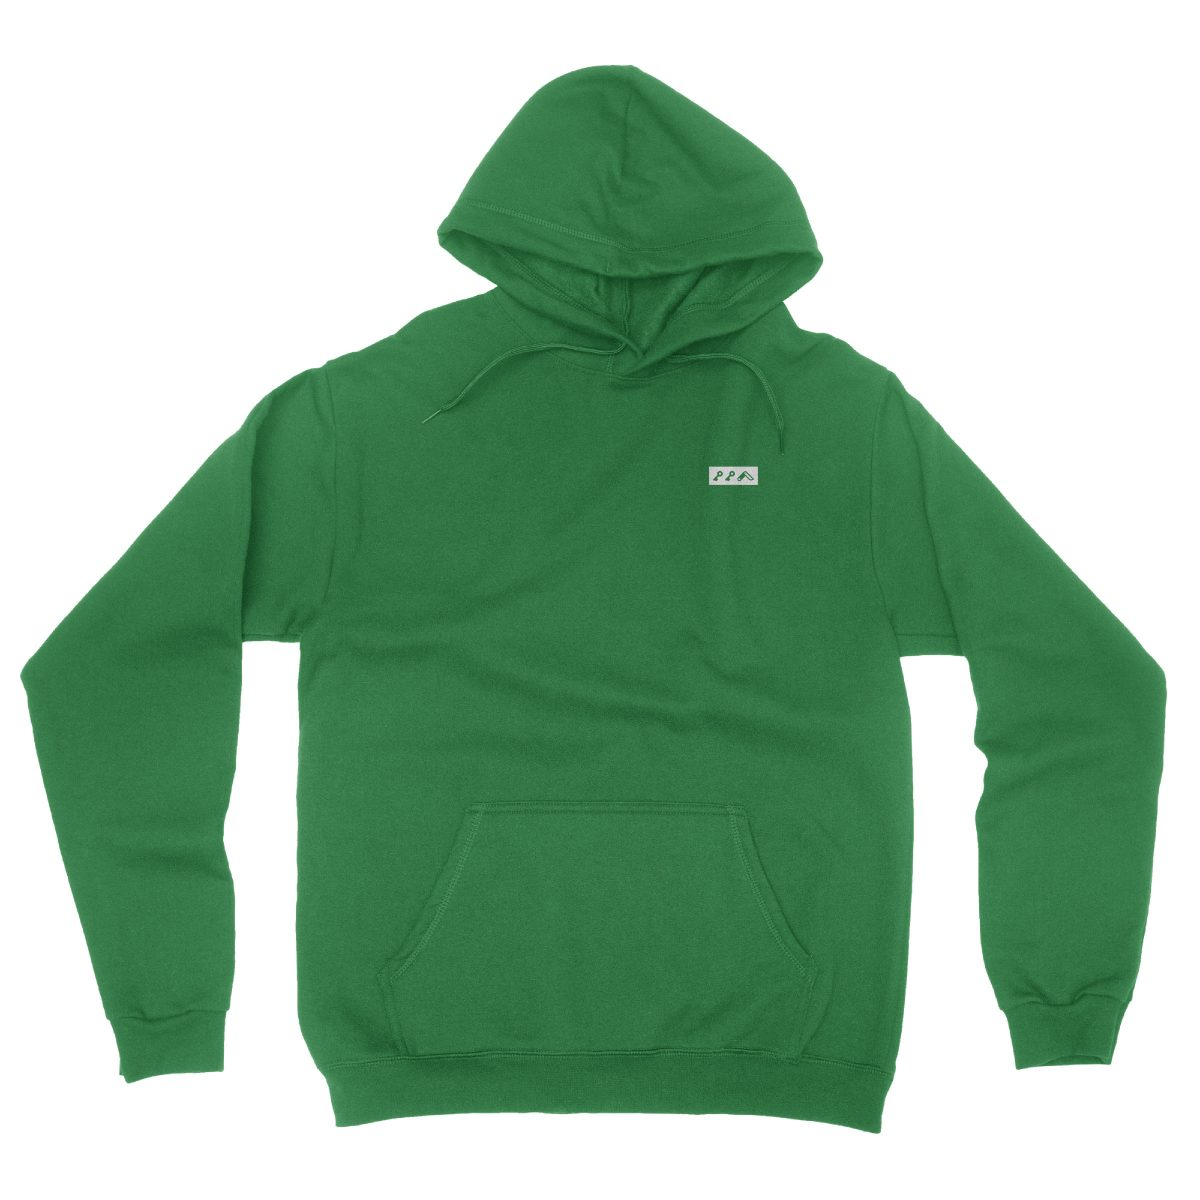 KIKICUTT white icon on an green classic and comfortable hoodie